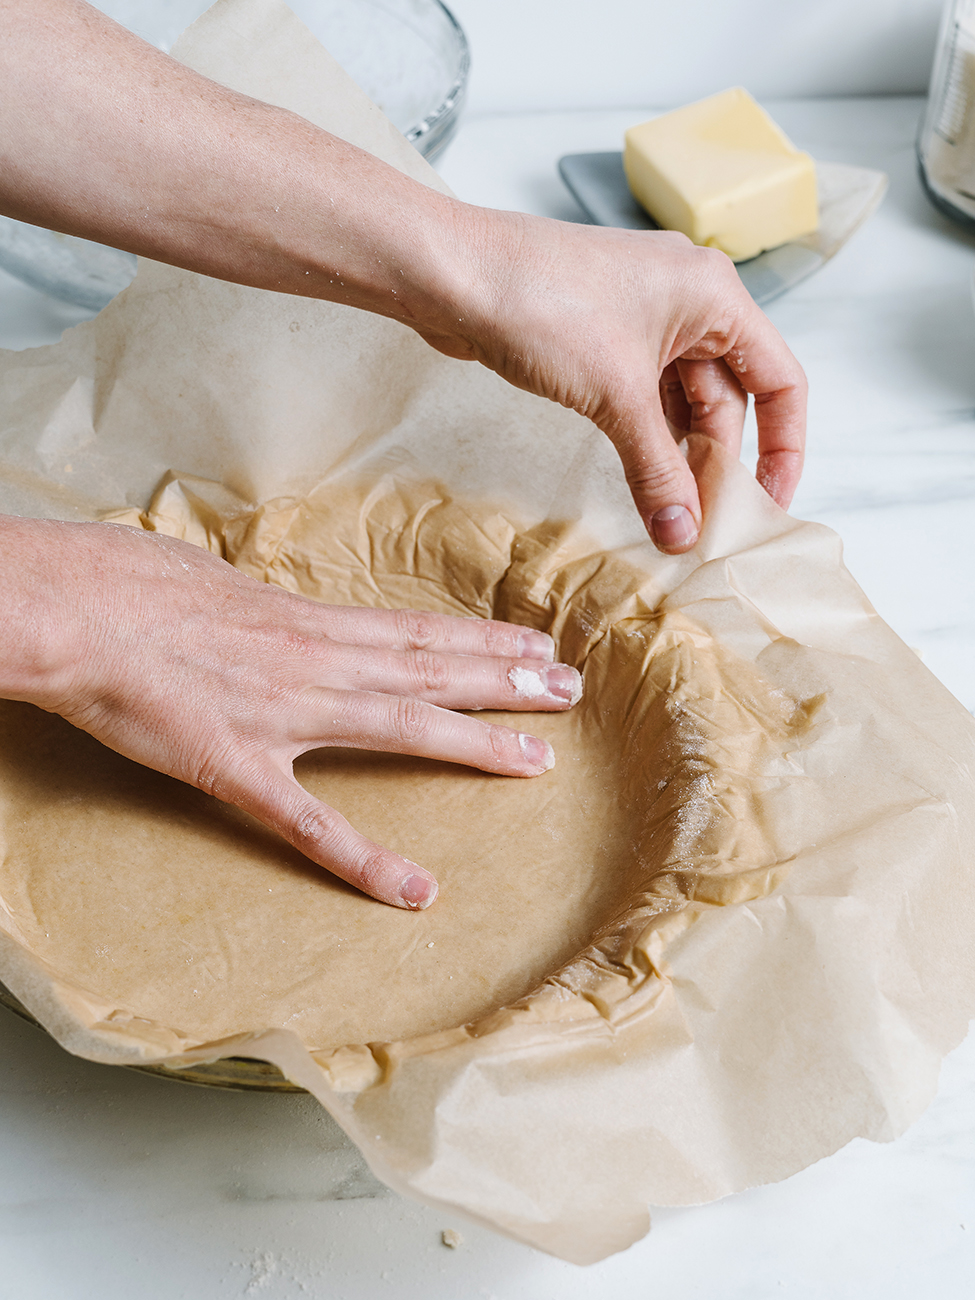 Dough being pressed into a pie tin with parchment